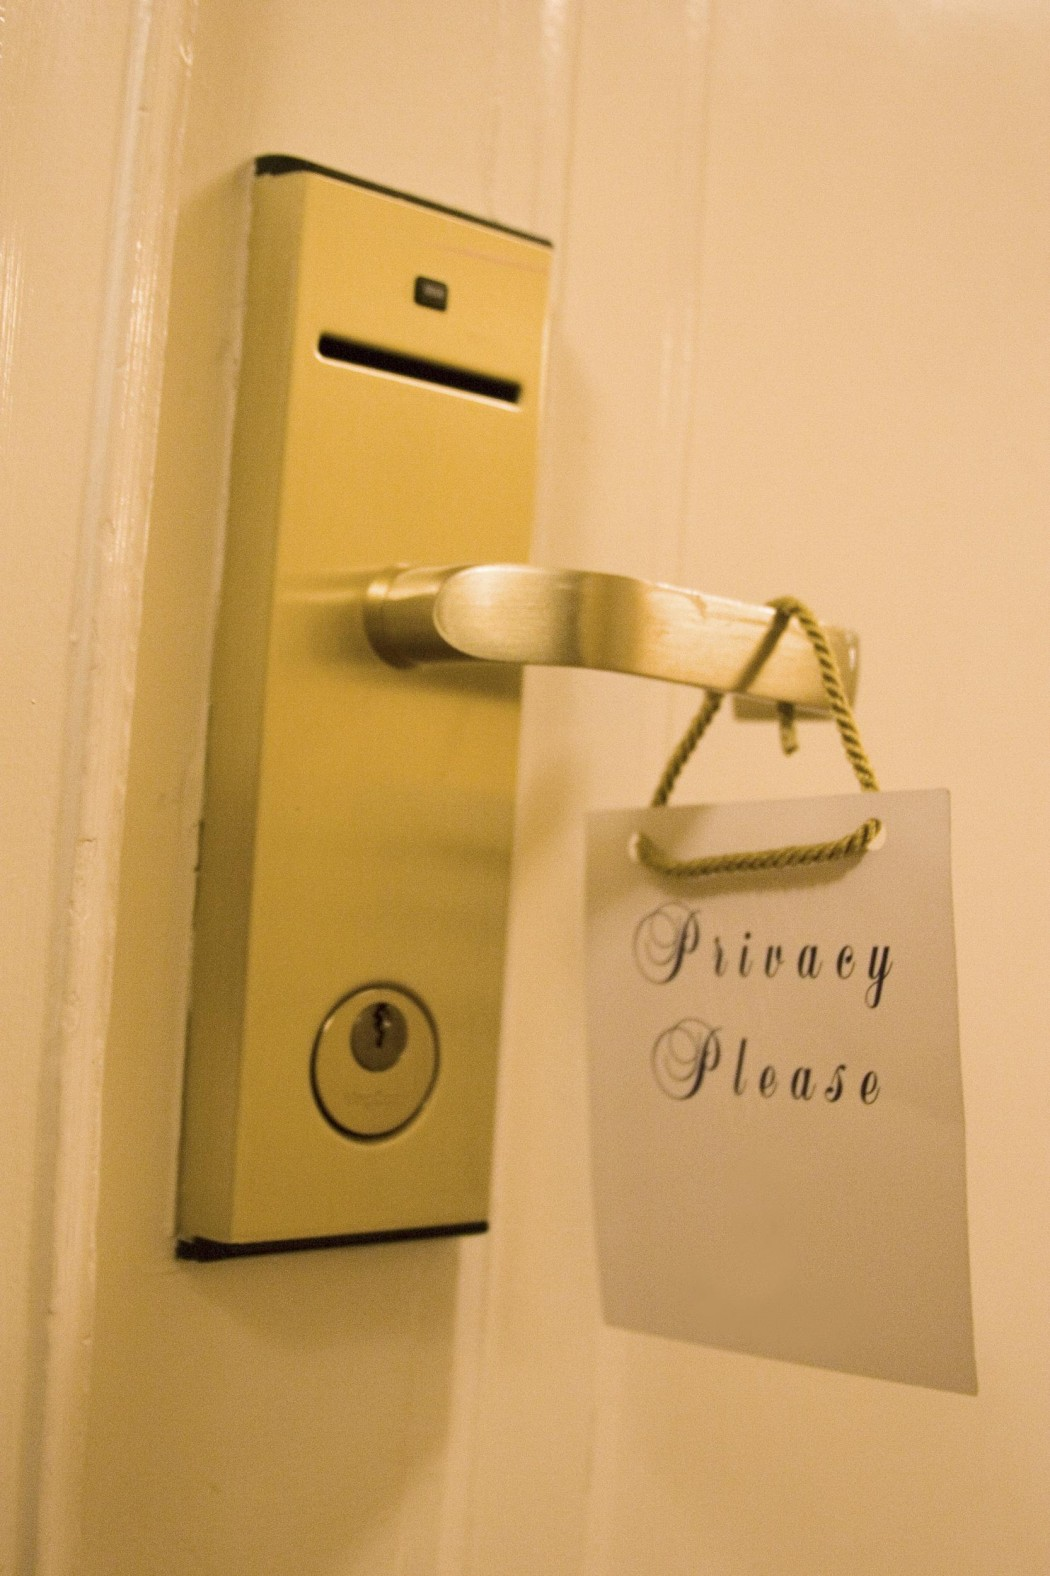 Hotel door handle with privacy sign